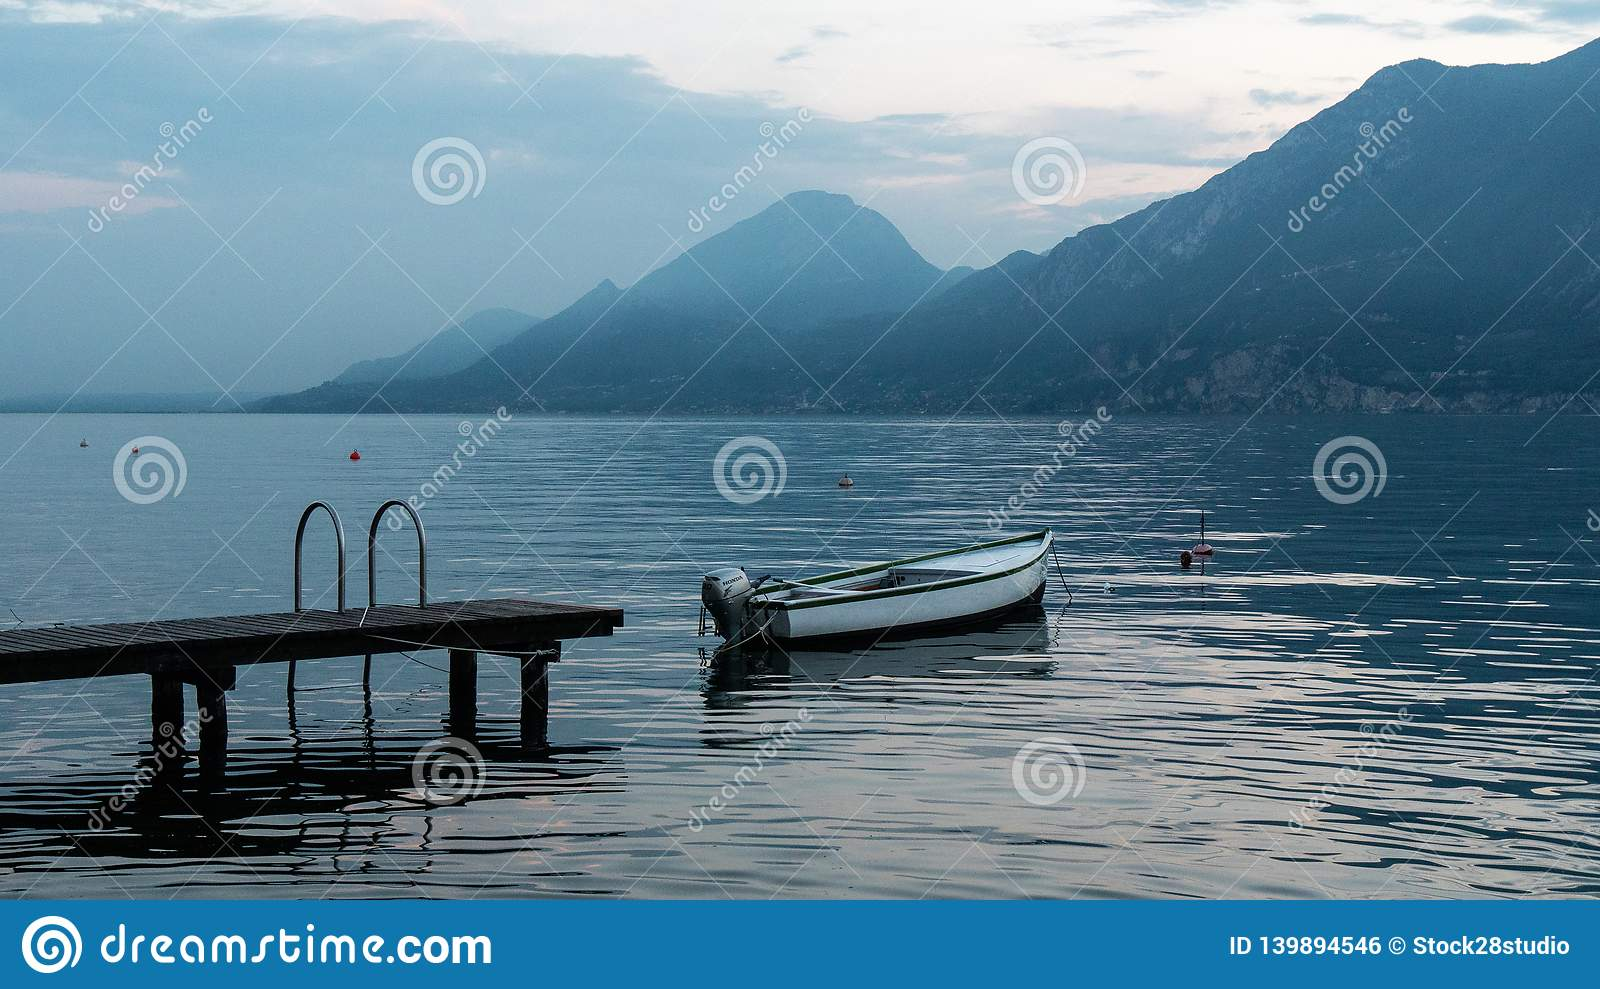 Beautiful landscape on lake Garda in Italy. Boat near the pier on the water surface of the water. The blue hues of the